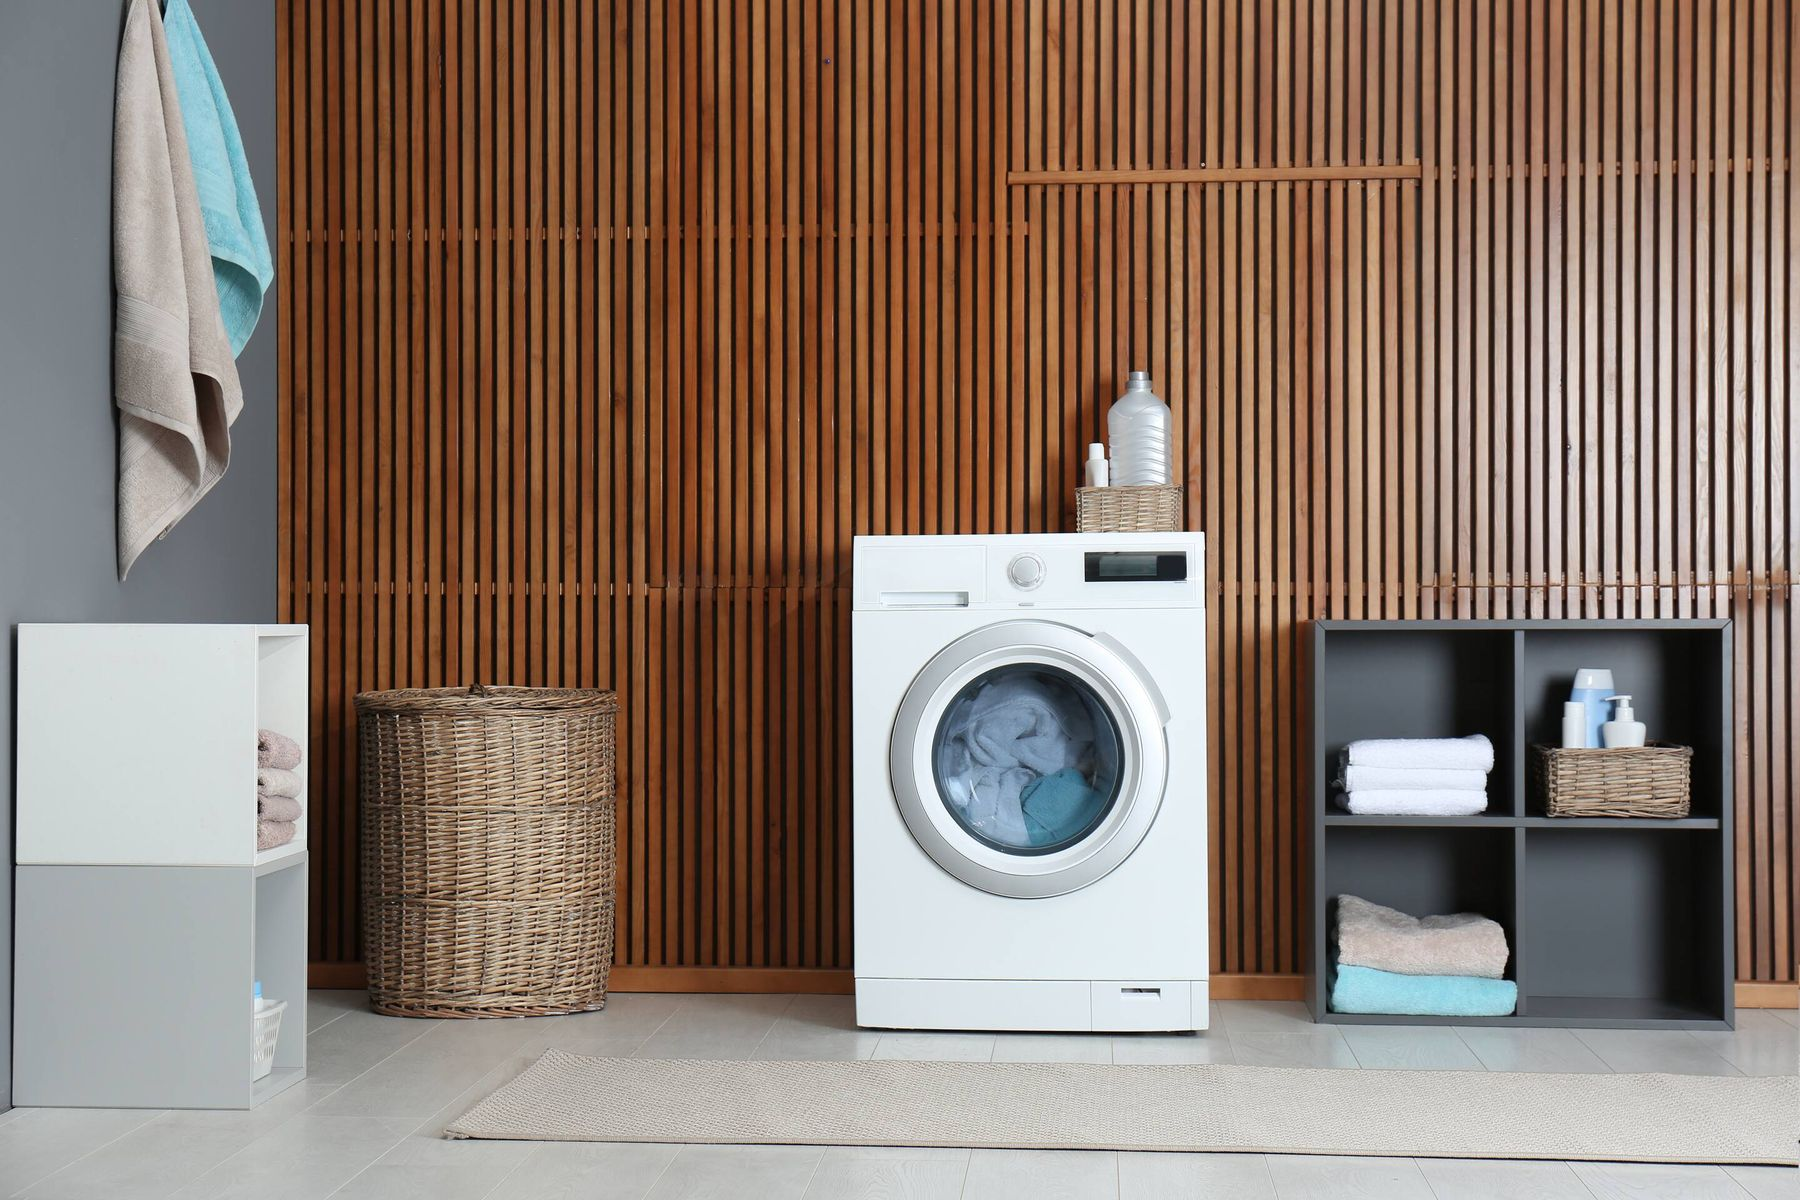 Is Your Washing Machine Shaking Too Much? Here's a Quick-Fix Guide